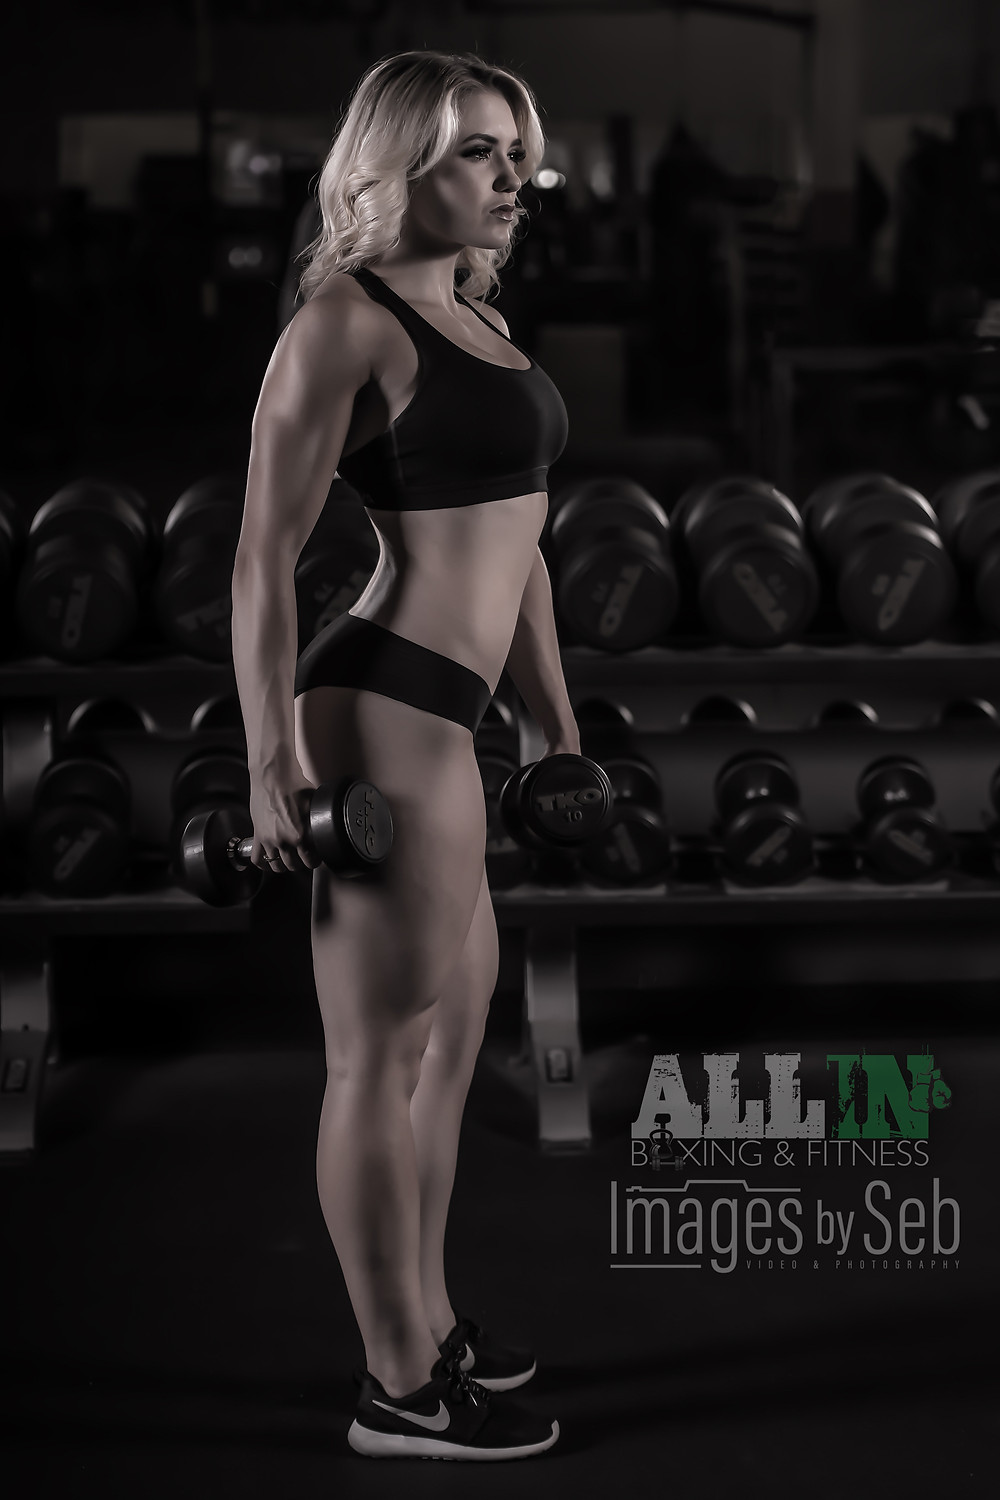 Fitness Photography | Images by Seb